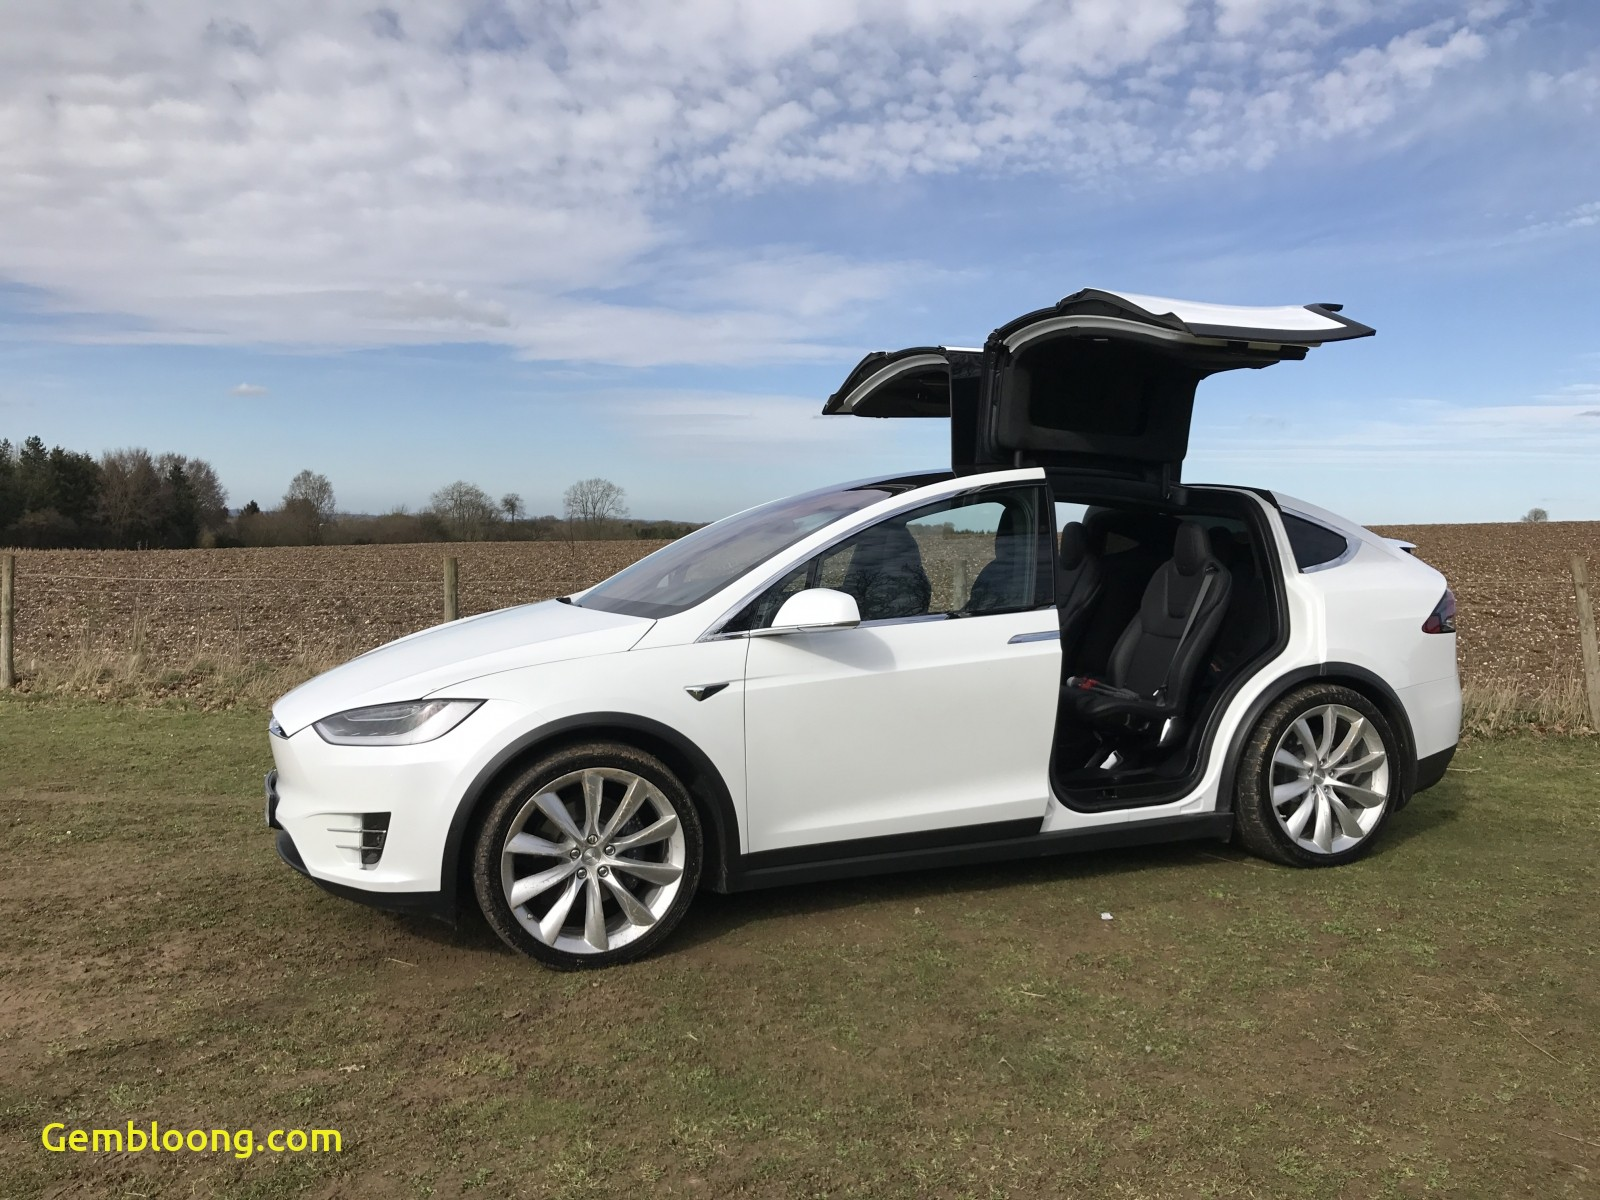 Tesla X Lovely Tesla Model X Review Sci Fi Style or too Clever for Its